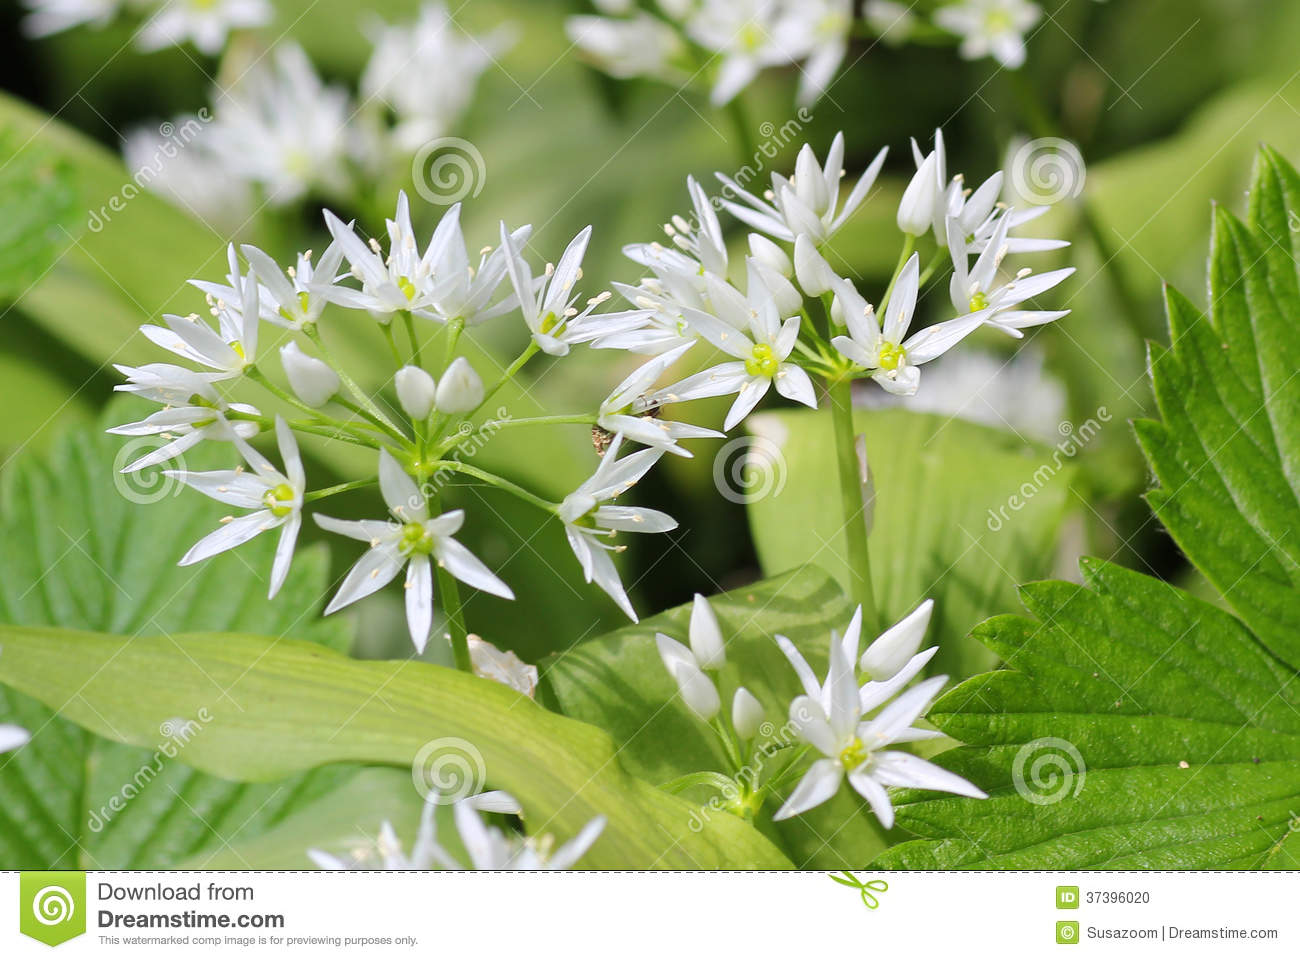 Wild Bears Garlic Flowers At Springtime, Edible Culinary Herb.